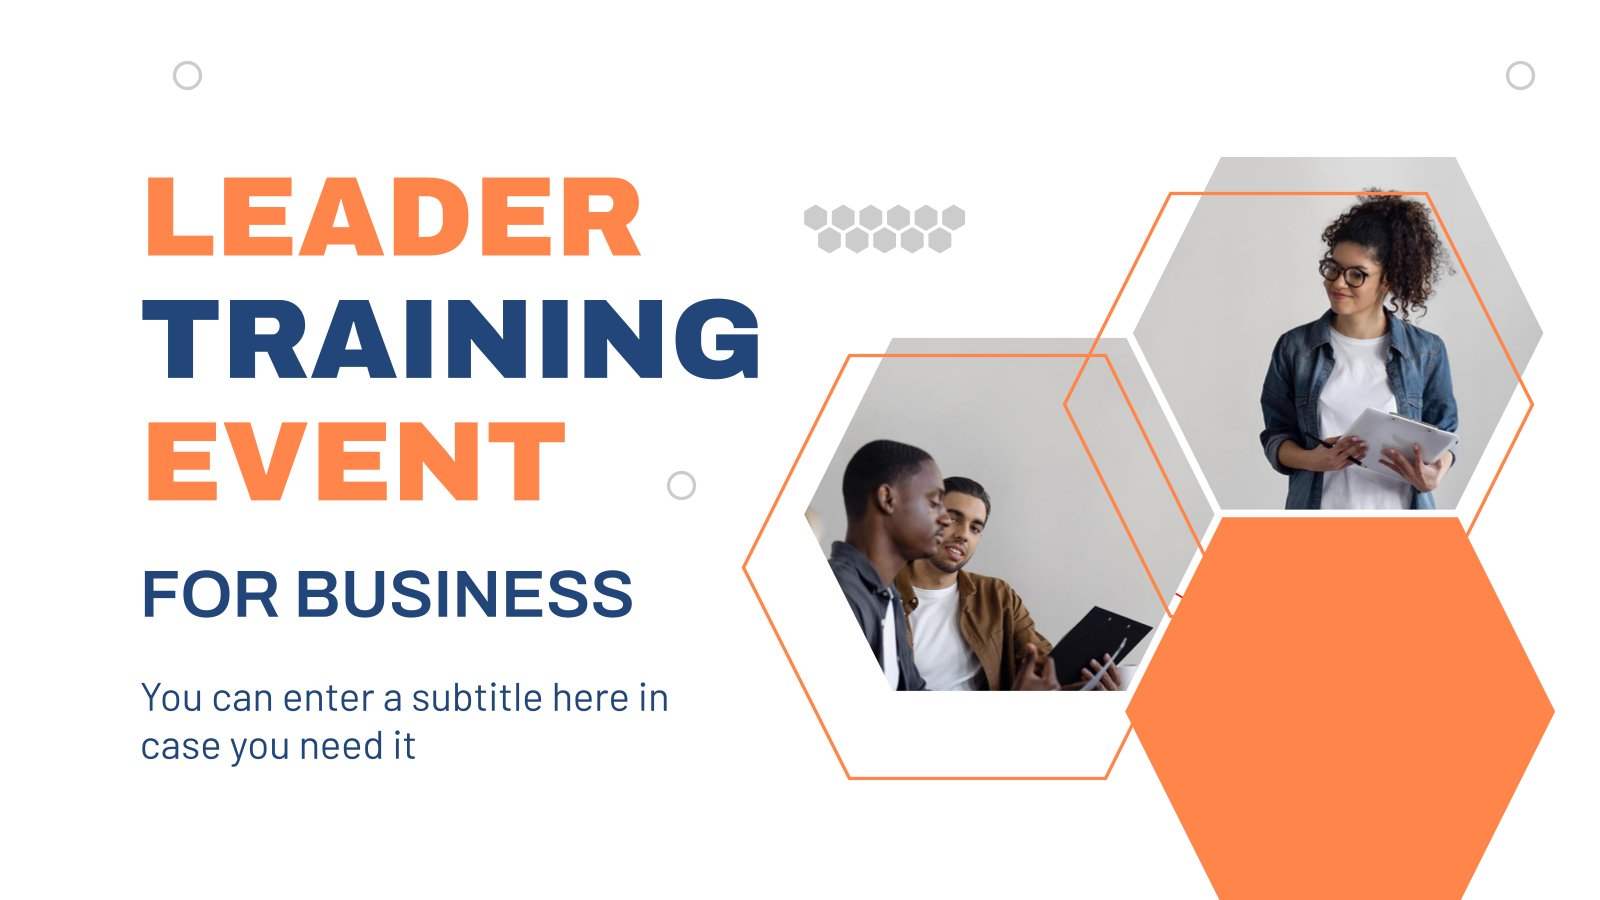 Leadership Training Event for Business presentation template